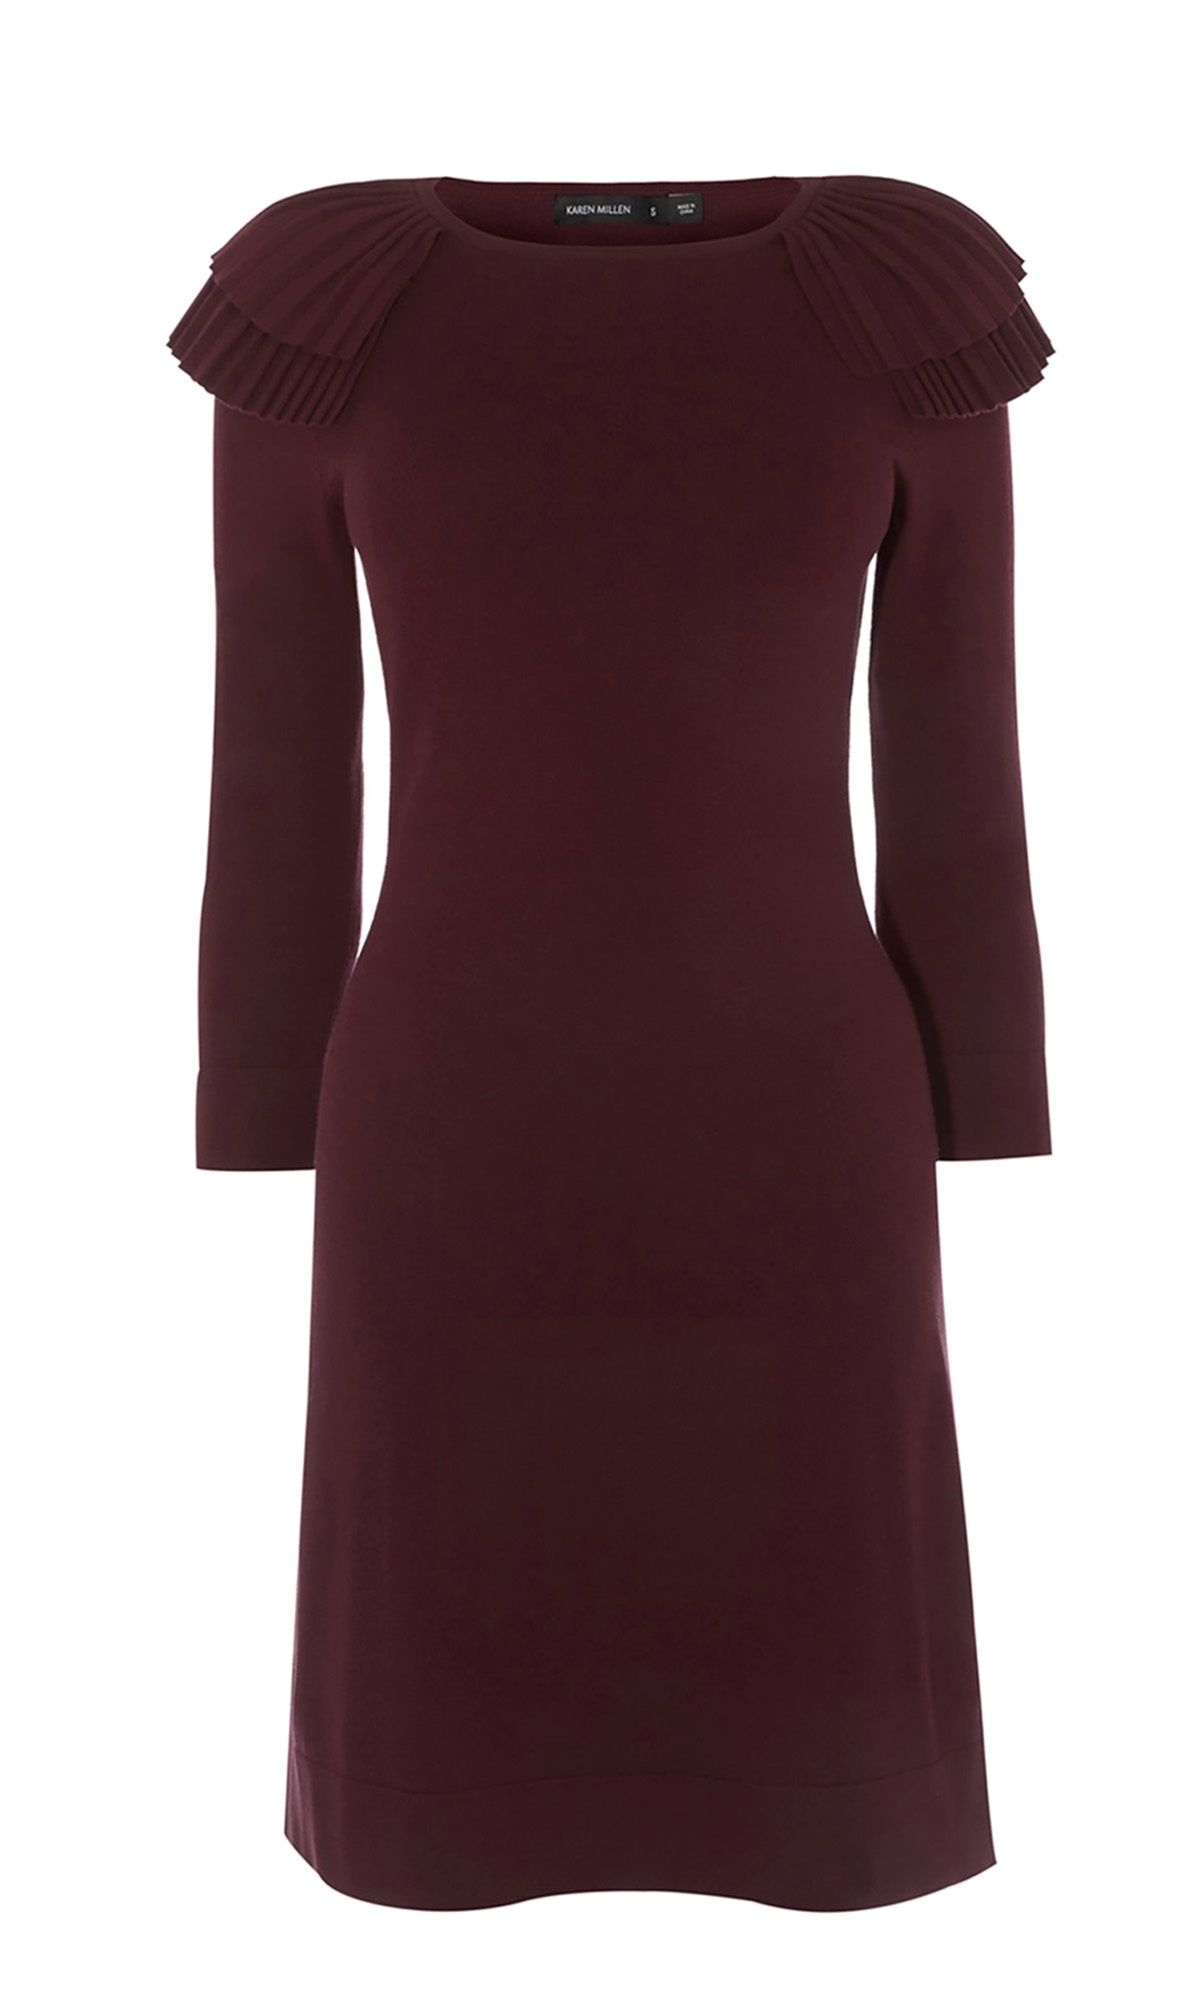 Karen Millen Frill Knitted Pencil Dress, Aubergine